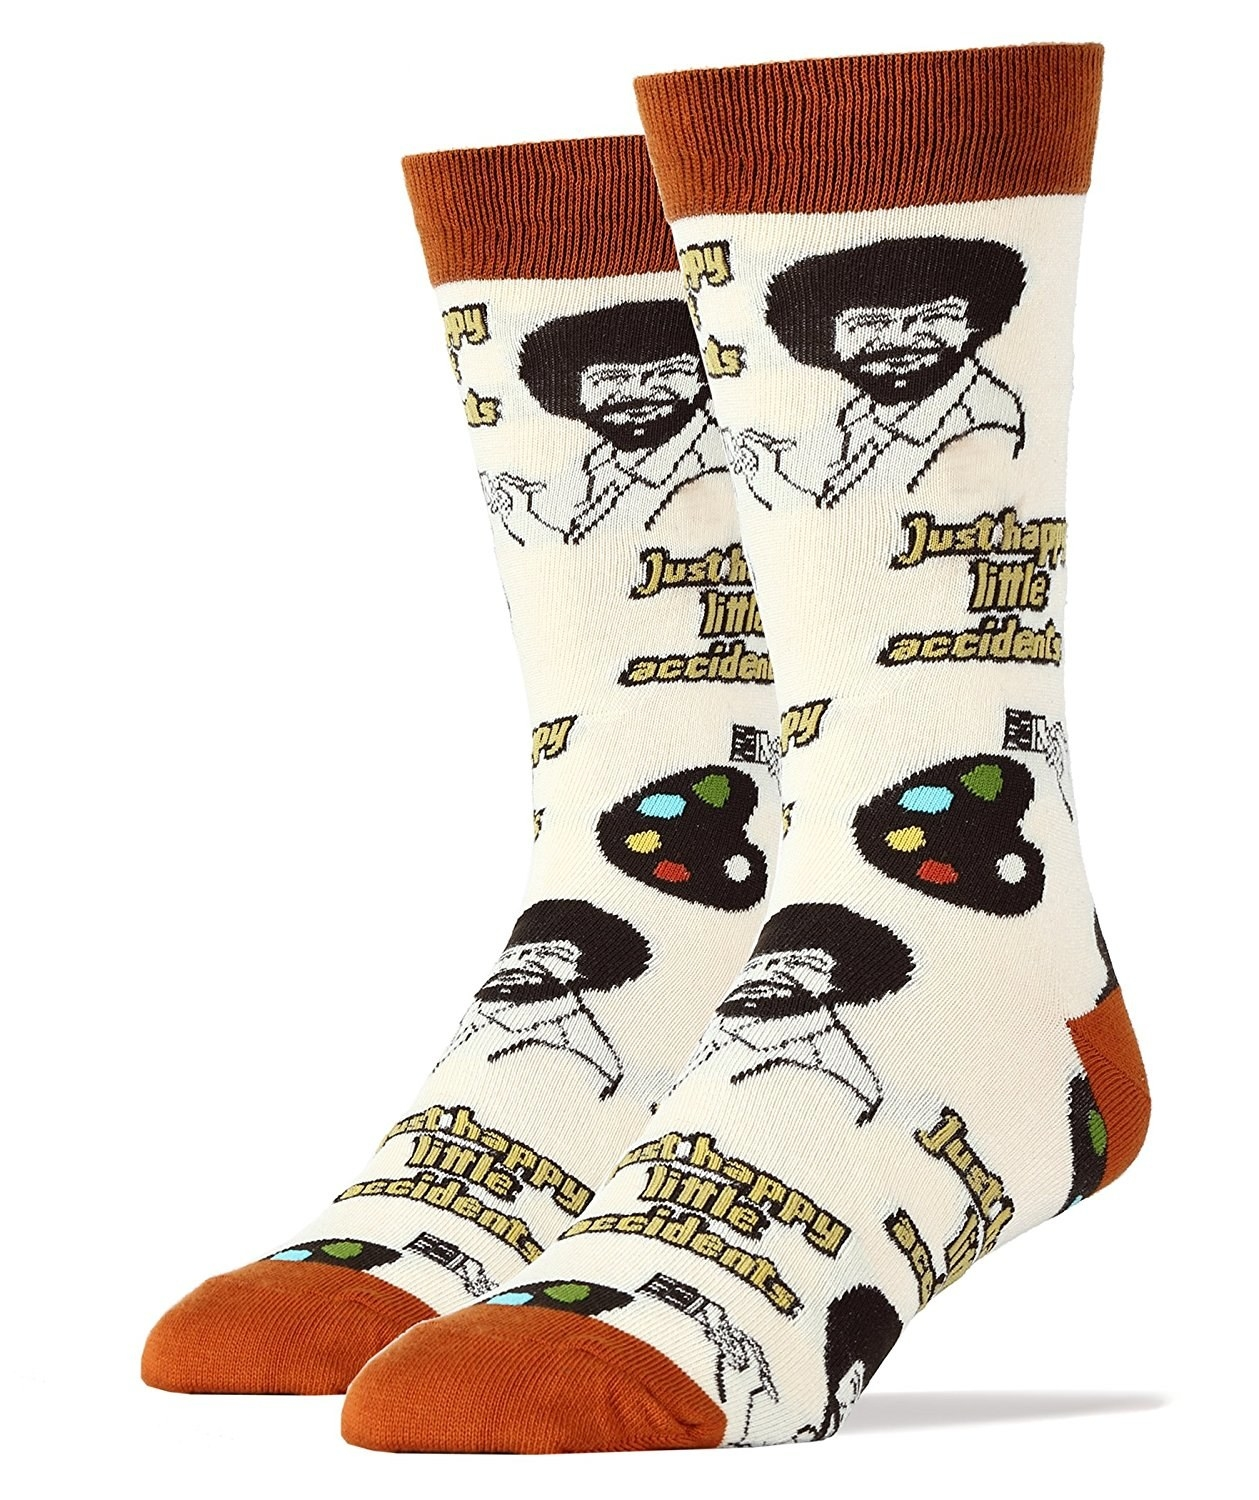 5 Bob Ross Socks That Remind A Loved One Theres No Such Thing As Mistakes